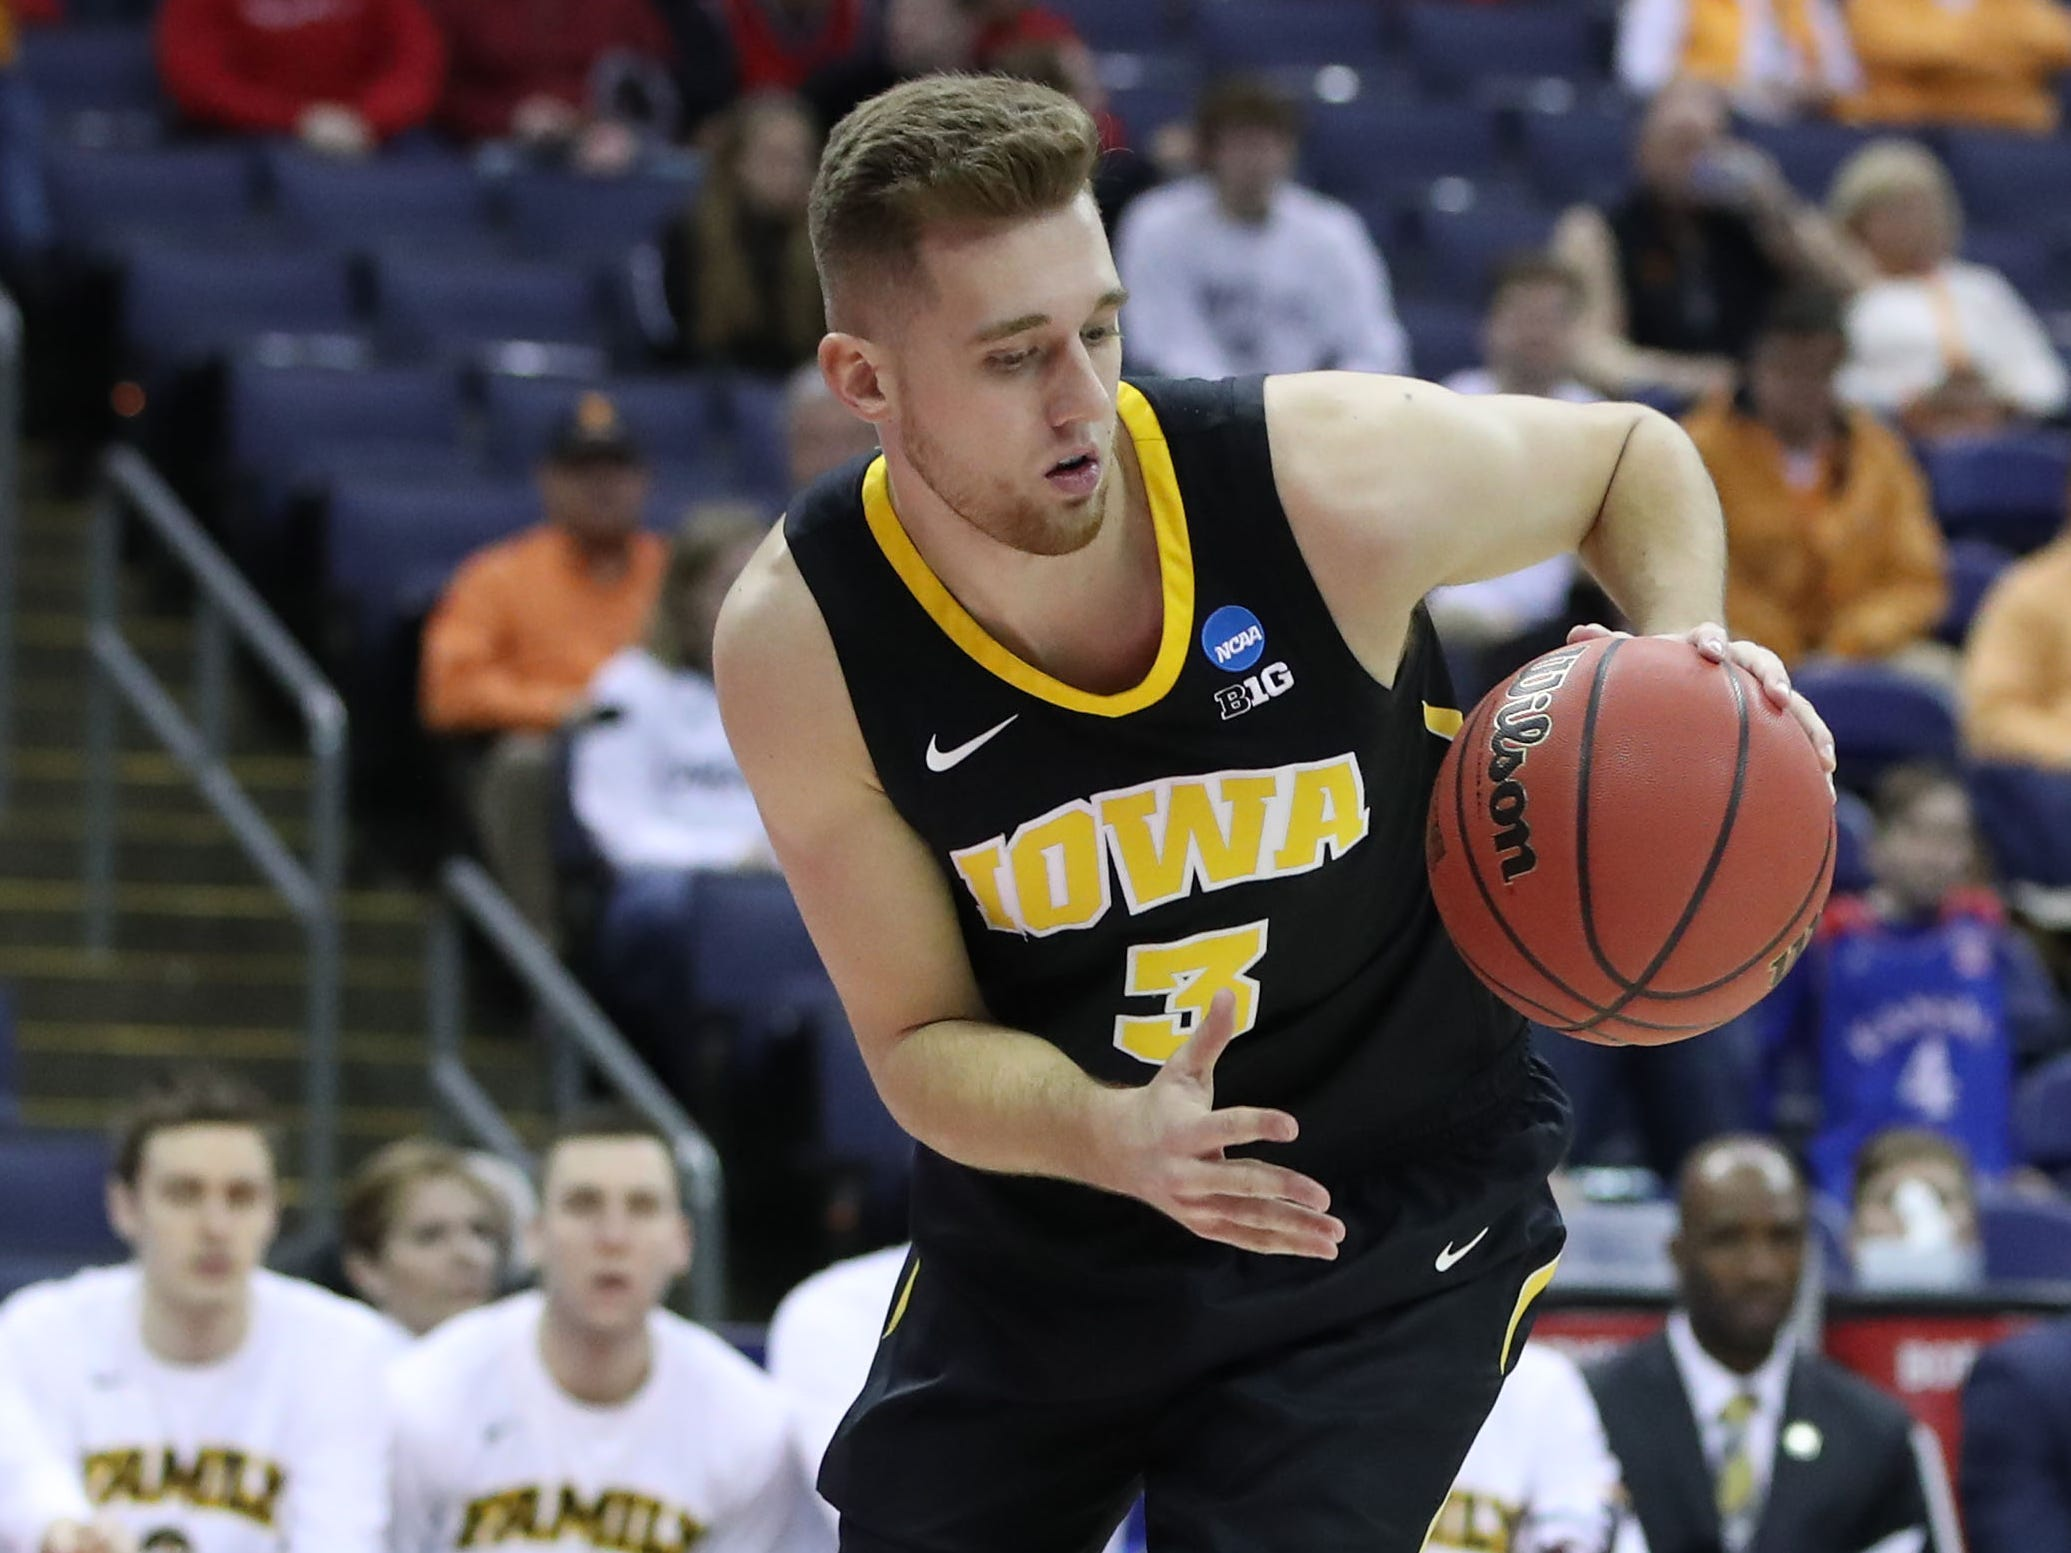 Iowa Hawkeyes guard Jordan Bohannon (3) dribbles the ball in the first half against the Cincinnati Bearcats in the first round of the 2019 NCAA Tournament at Nationwide Arena on March 22, 2019.